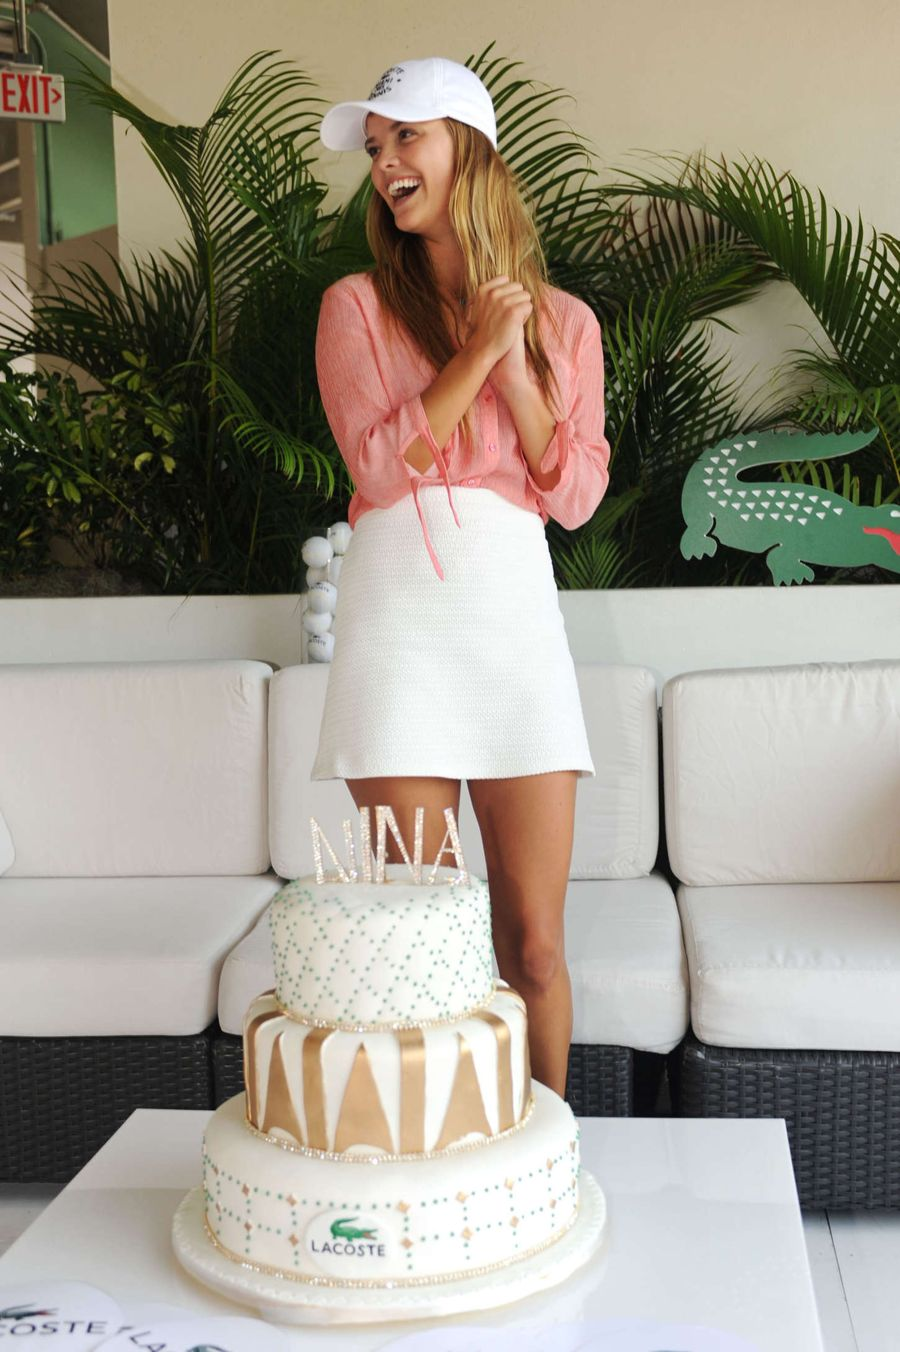 Nina Agdal Celebrates Her Birthday at Lacoste Suite